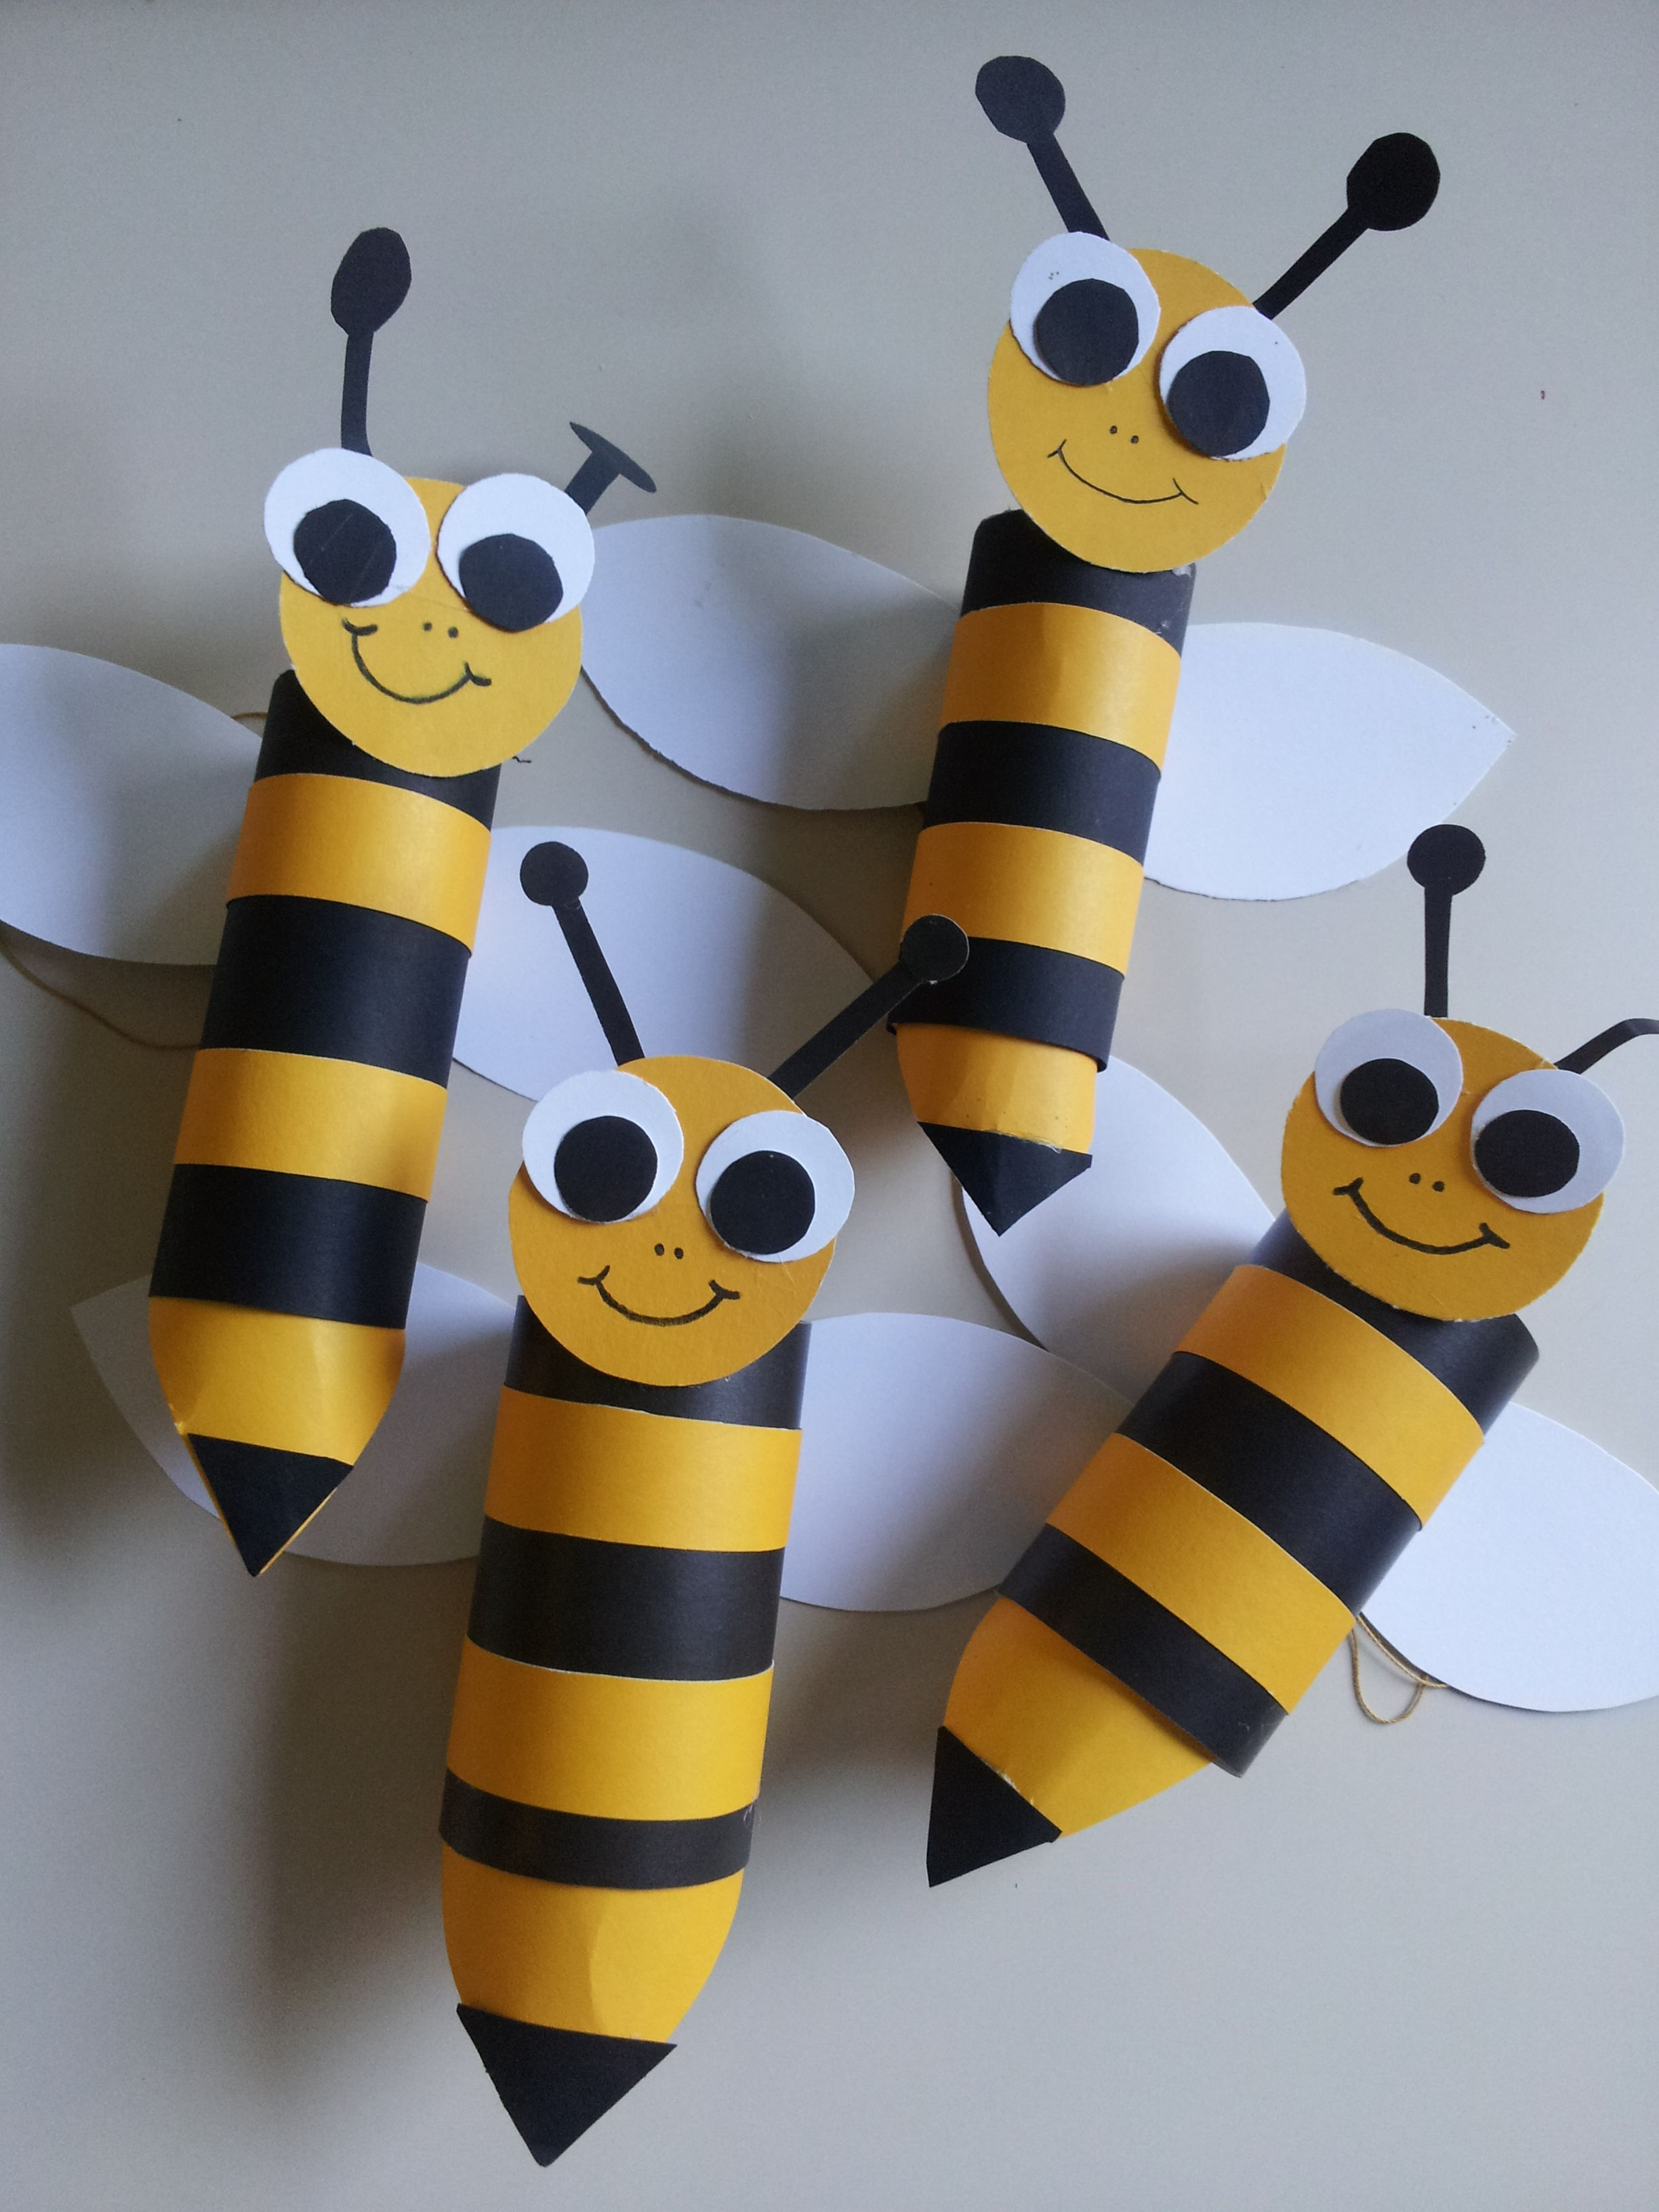 Ms de 20 manualidades con rollos de papel higinico animales toilet paper roll bees sorry no link but i think you can figure jeuxipadfo Choice Image